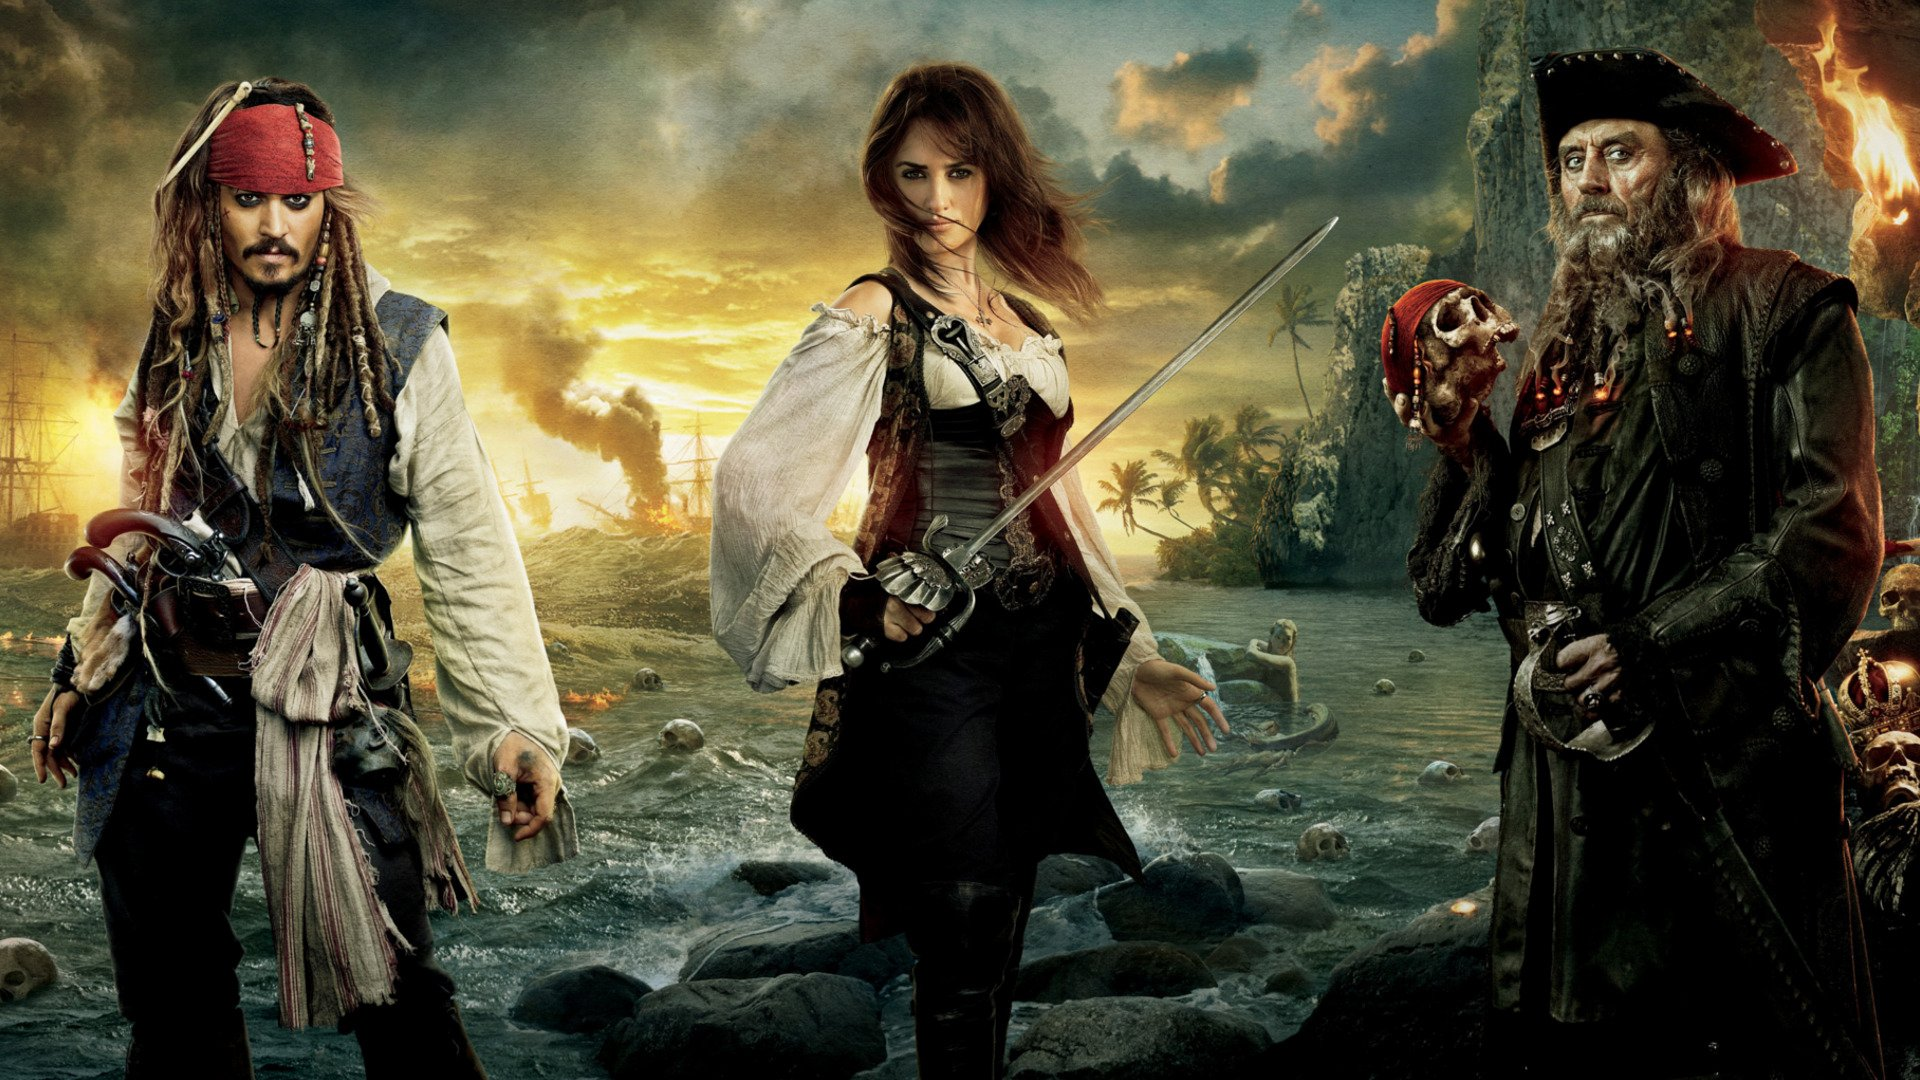 Pirates of the caribbean on stranger tides hd wallpaper background image 1920x1080 id - Pirates of the caribbean images hd ...